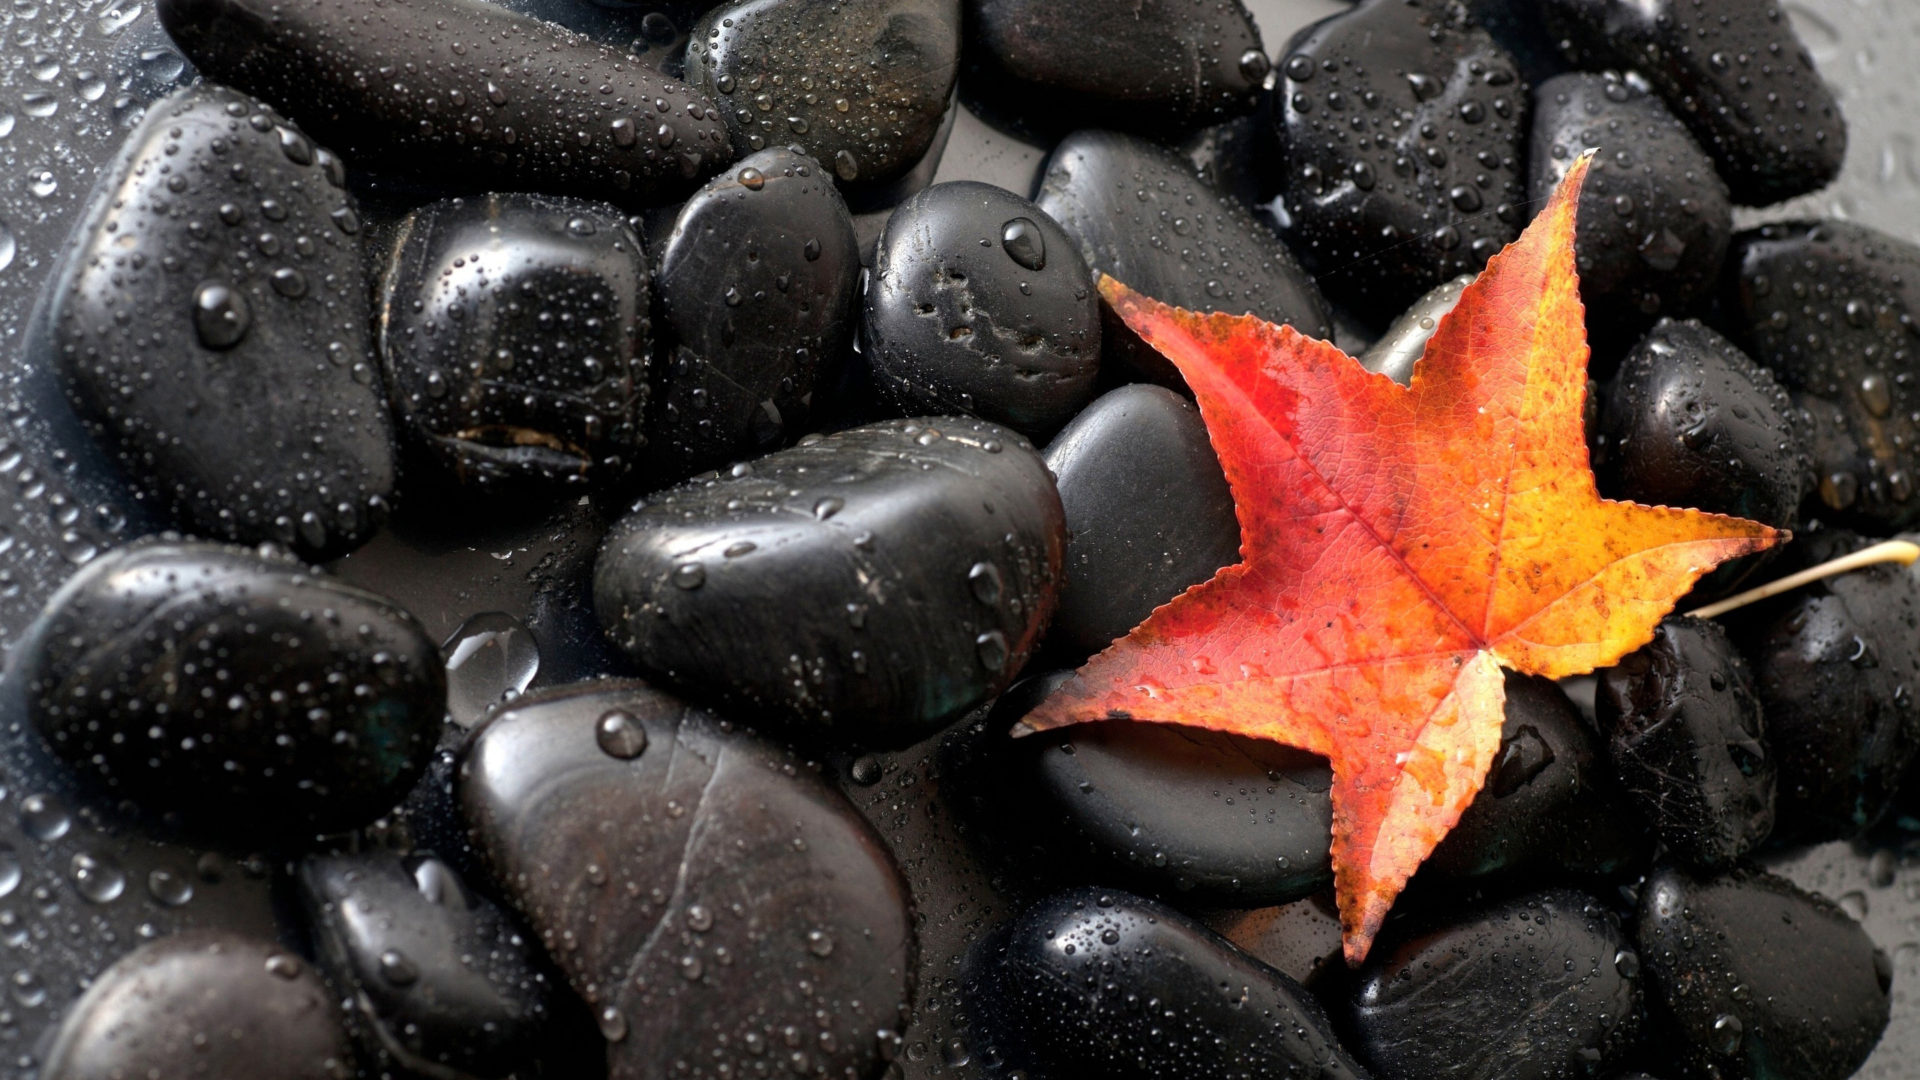 Fall Themed Wallpaper Desktop Gorgeous Black Stones Red Autumn Leaf Hd Desktop Wallpaper